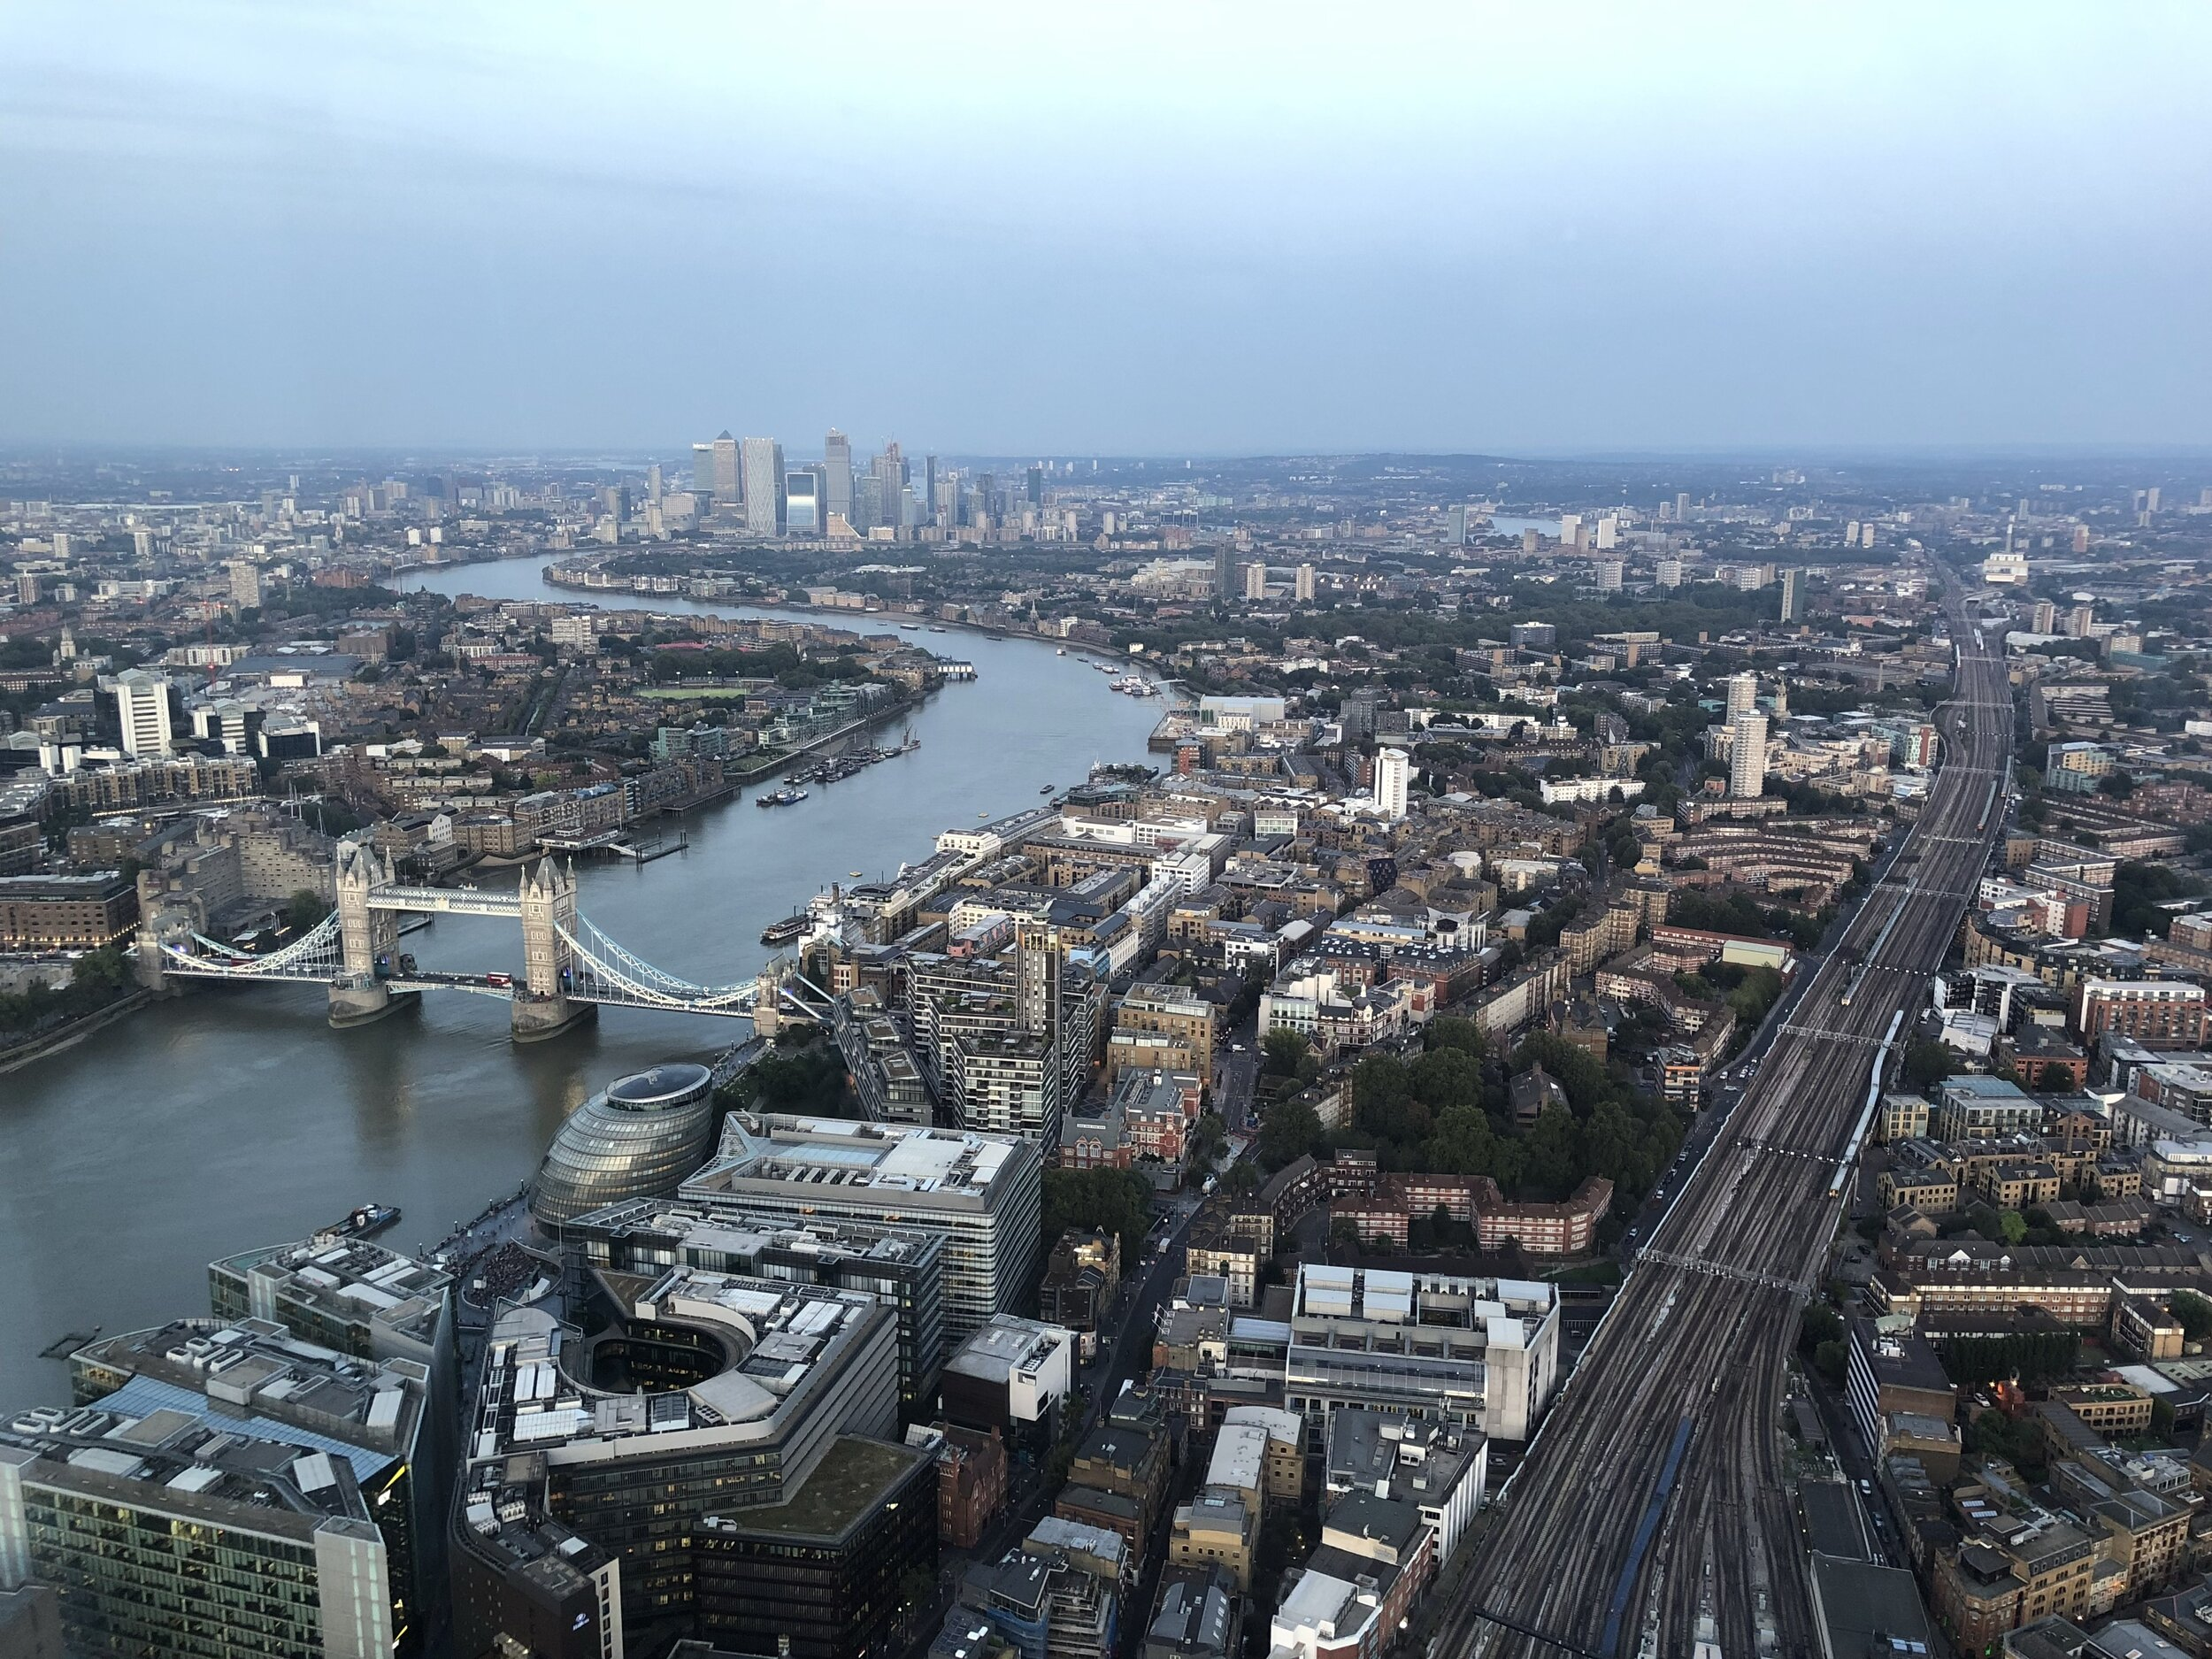 Looking out from The Shard toward Tower Bridge.